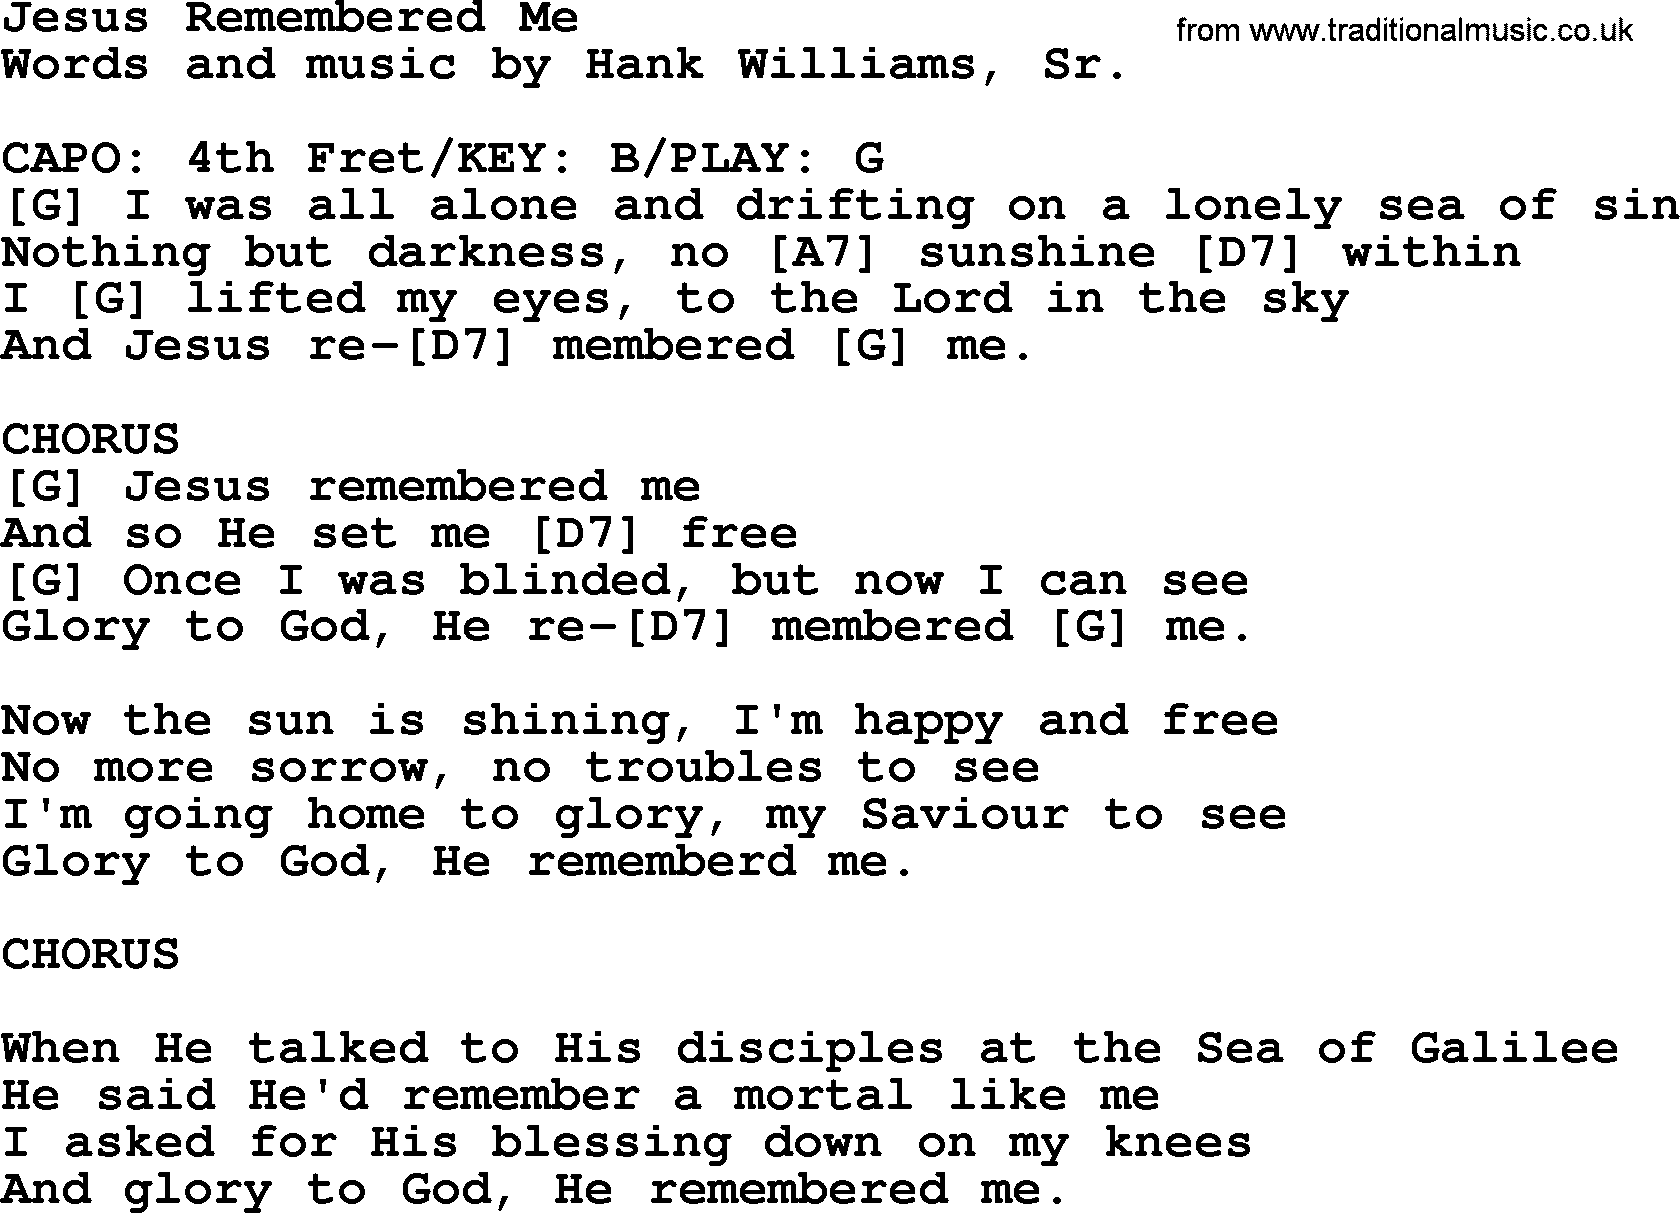 Hank Williams Song Jesus Remembered Me Lyrics And Chords